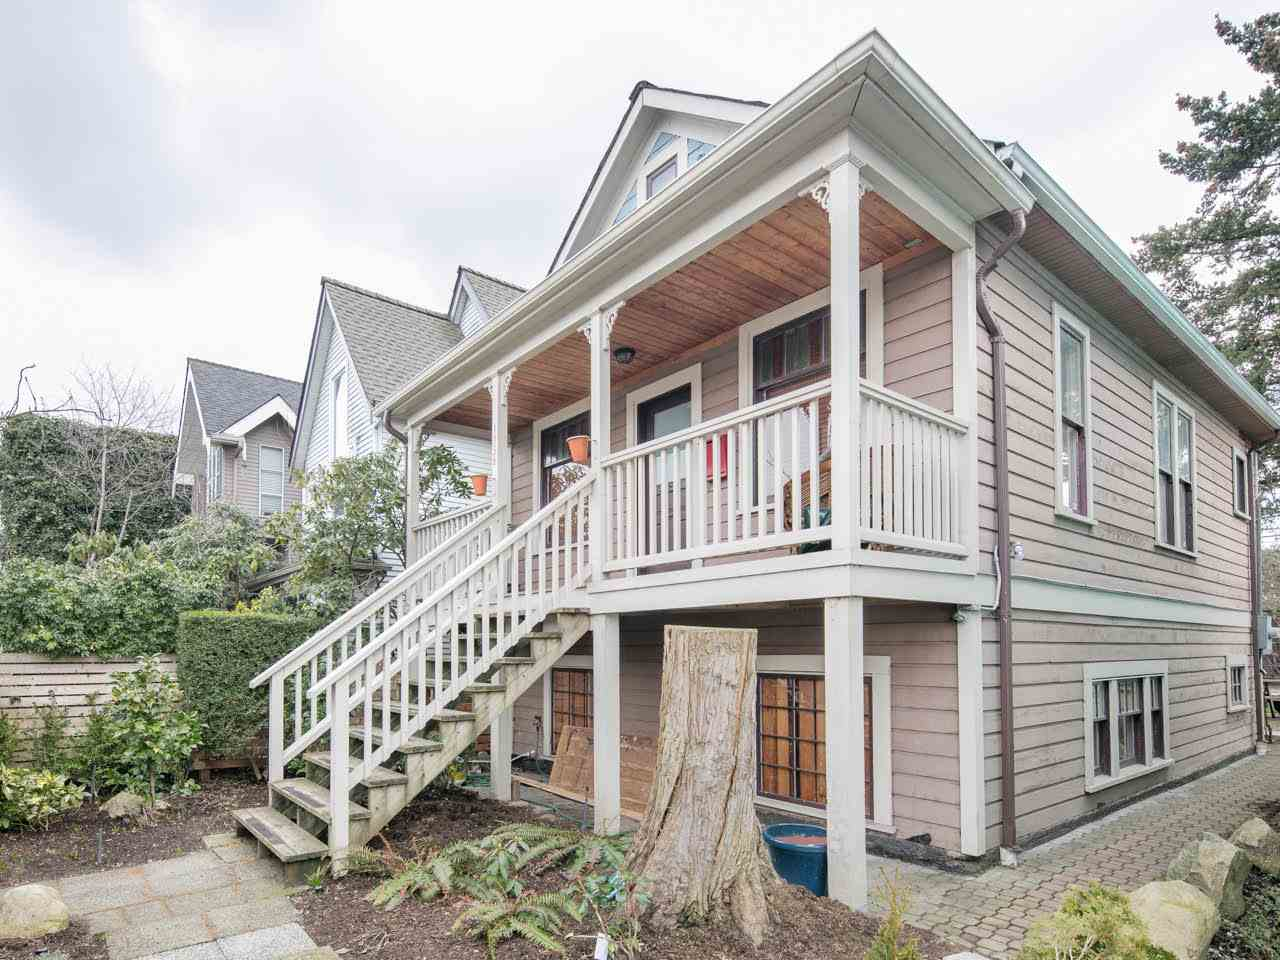 Photo 1: 1156 E PENDER Street in Vancouver: Mount Pleasant VE House for sale (Vancouver East)  : MLS(r) # R2143773